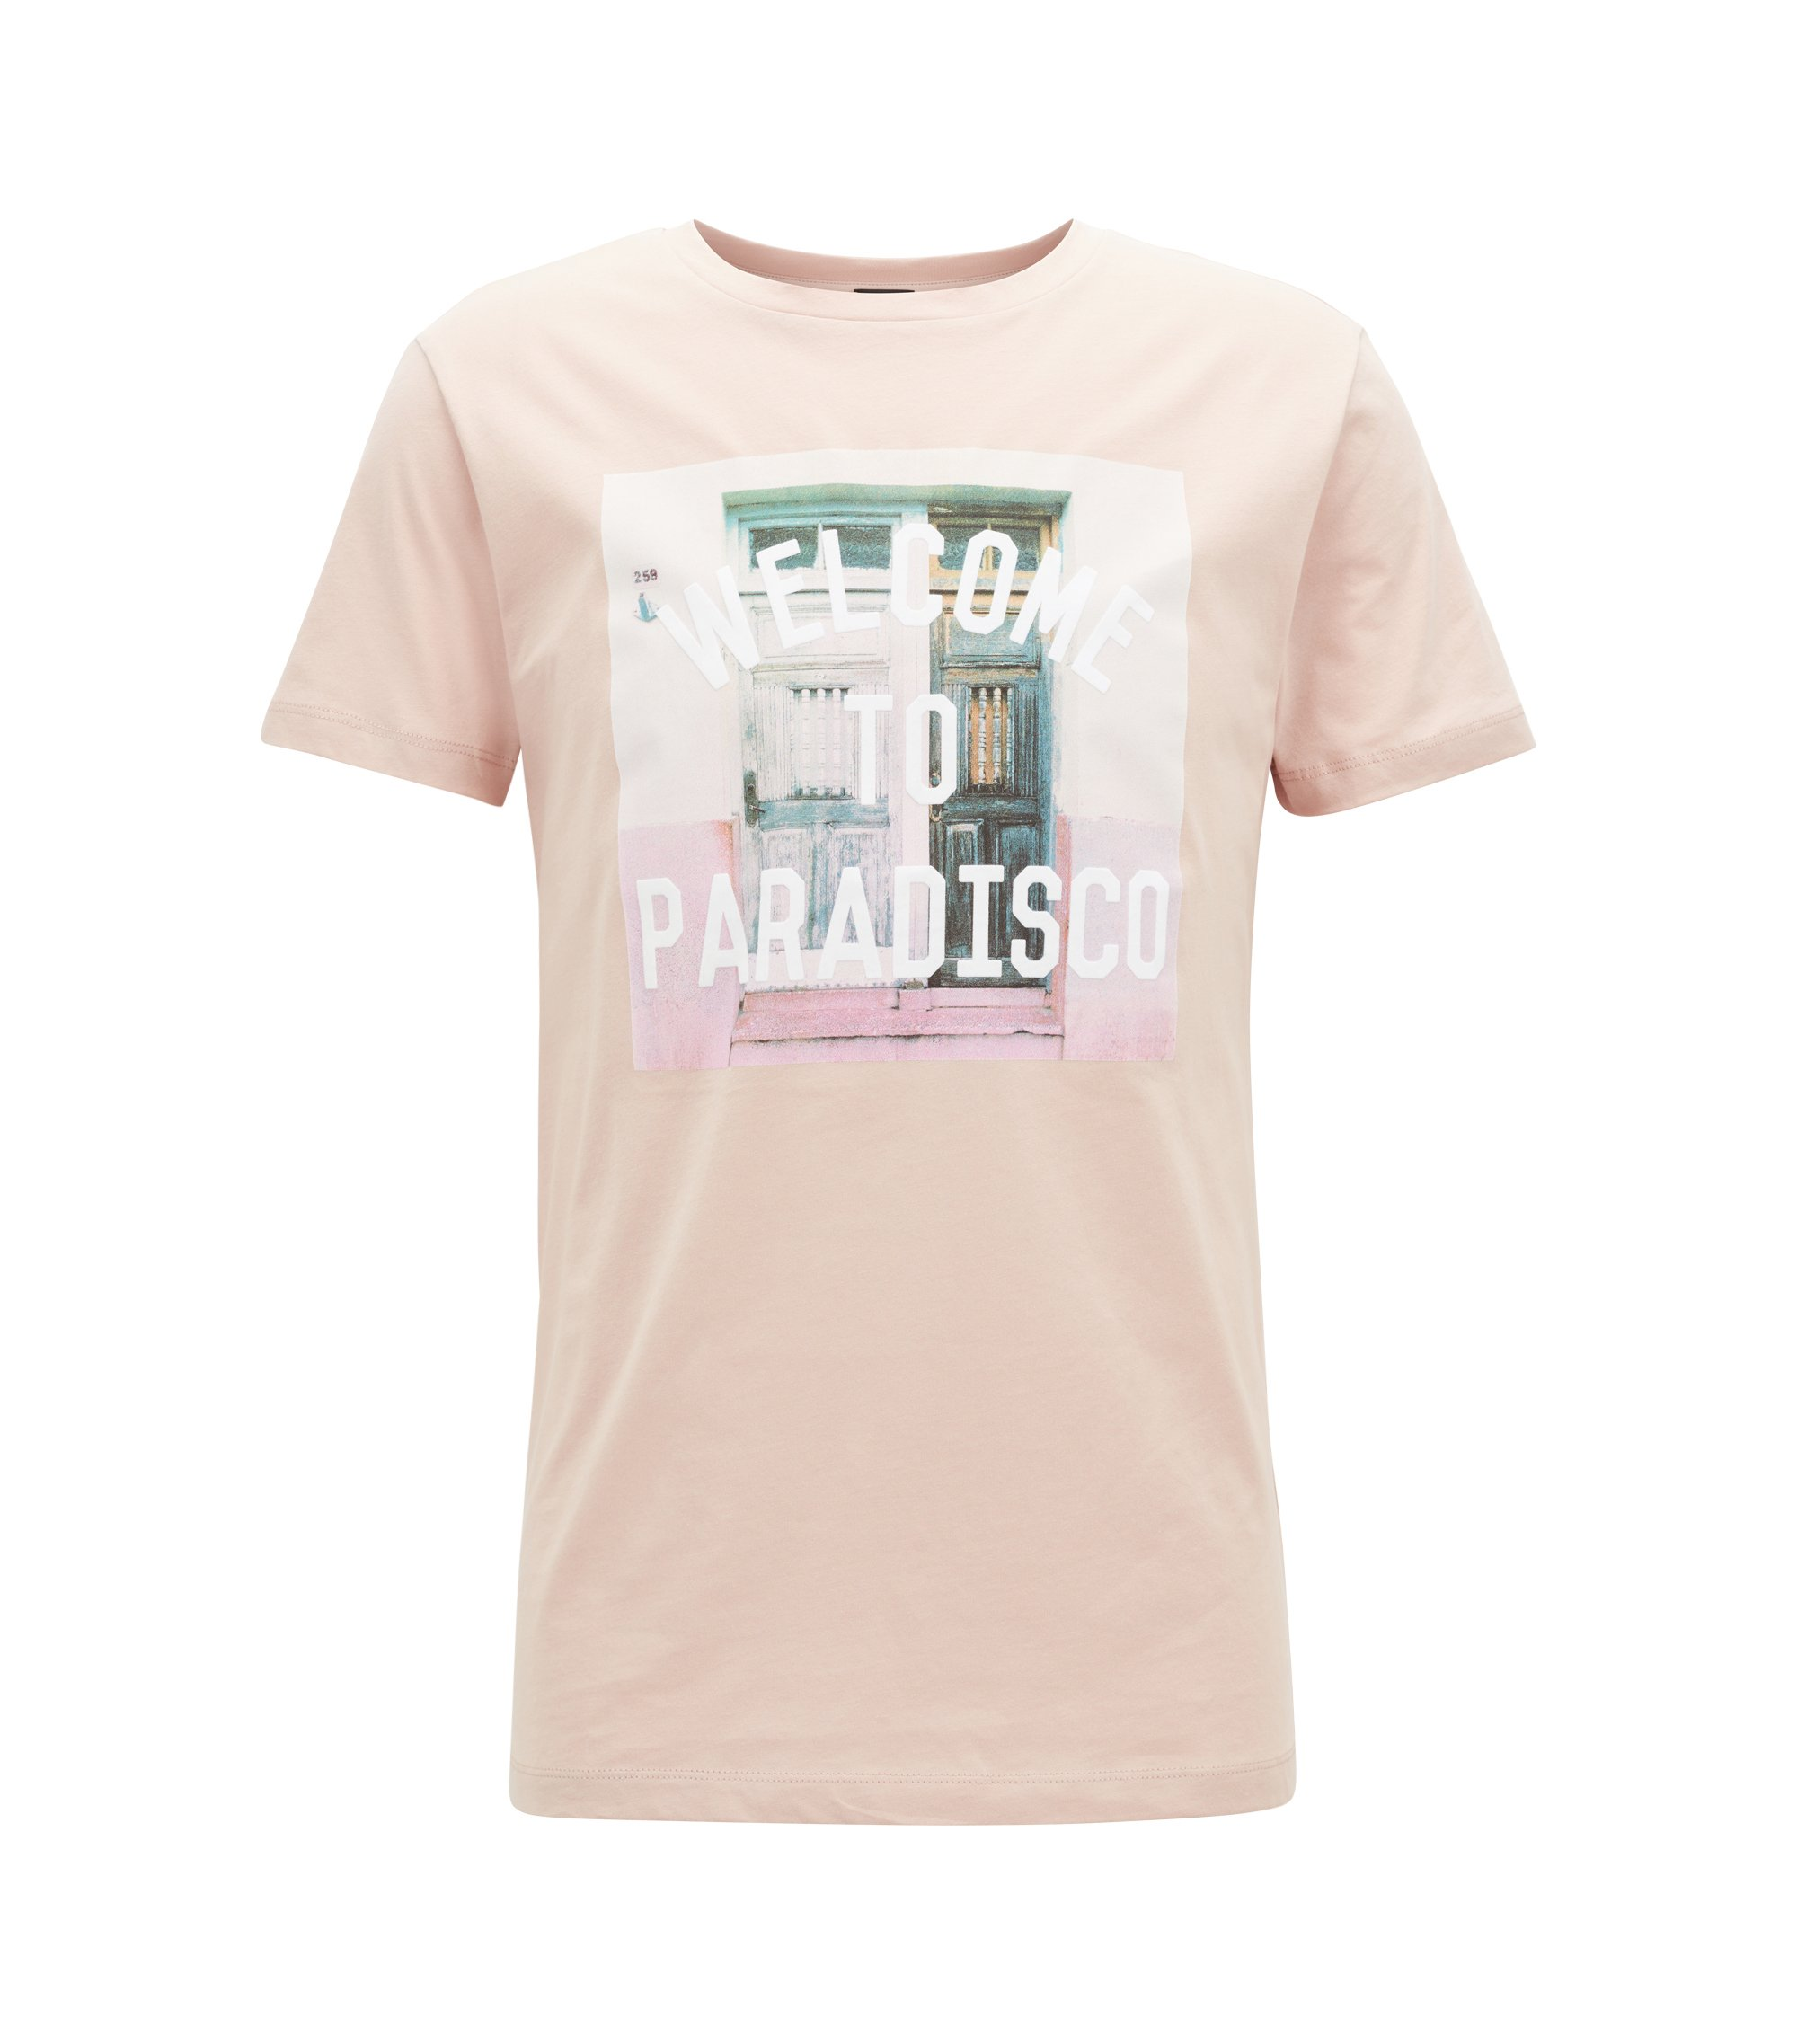 T-shirt graphique Relaxed Fit en jersey simple de coton, Rose clair